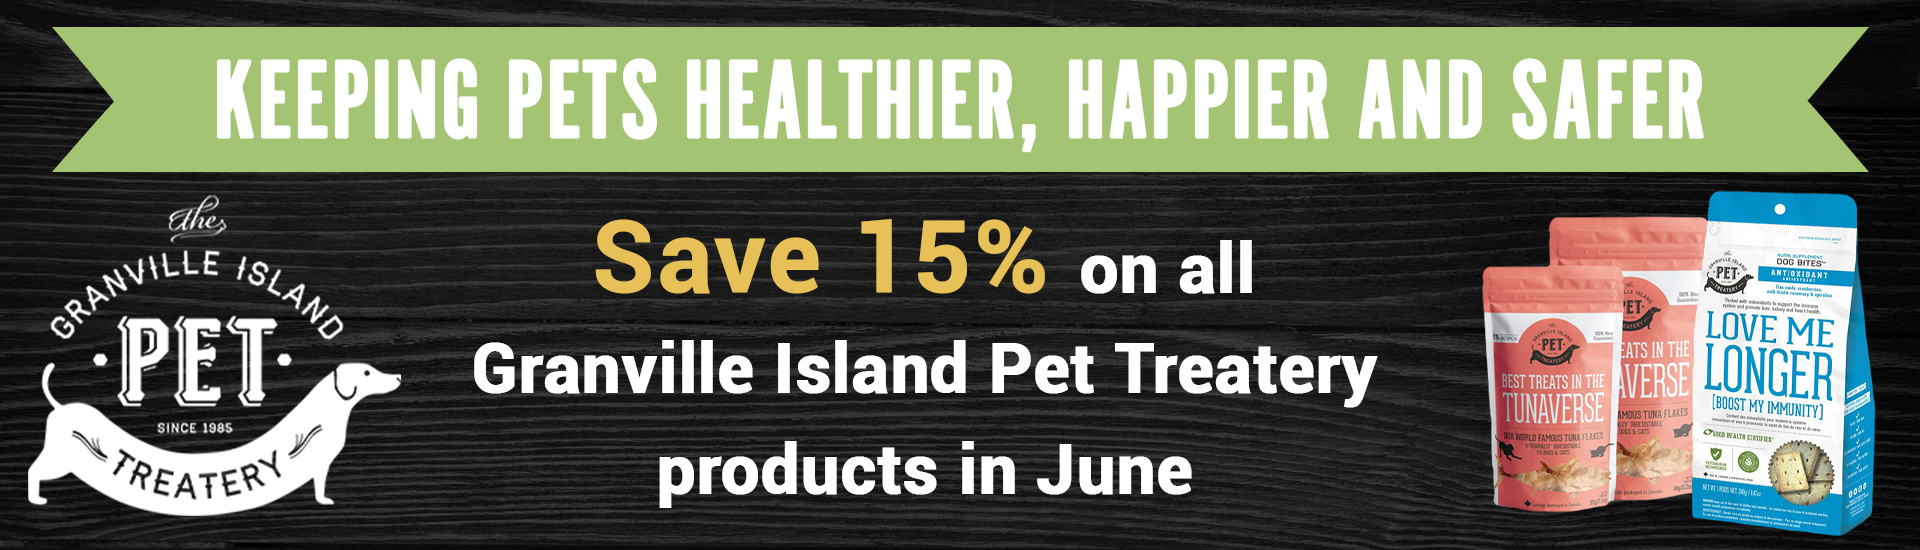 Keeping pets healthier, happier and safer. Save 15% on all Granville Island Pet Treatery products in June.